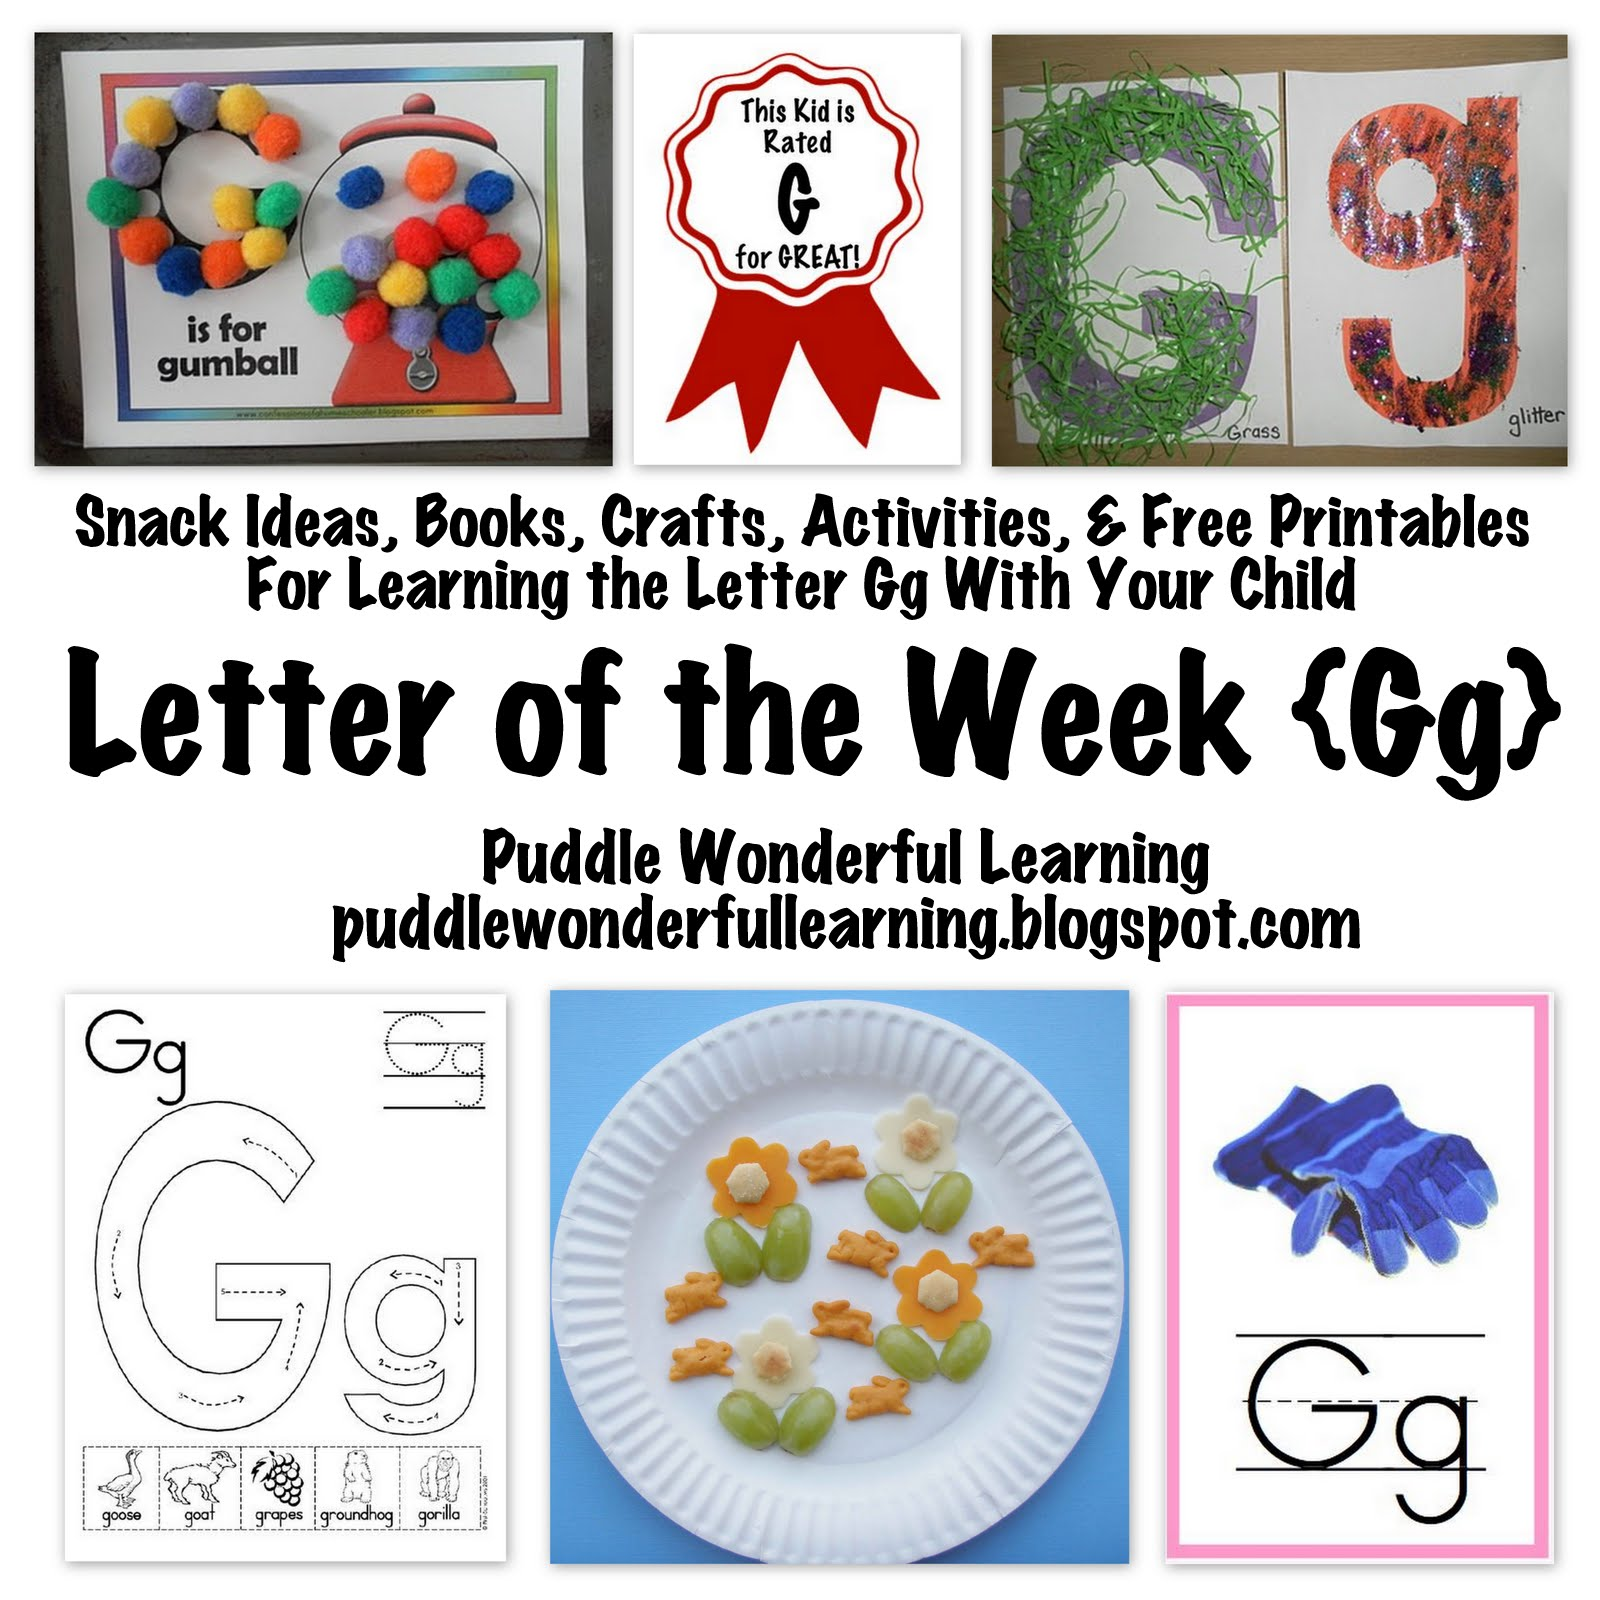 Puddle Wonderful Learning Preschool Activities Letter Of The Week Gg